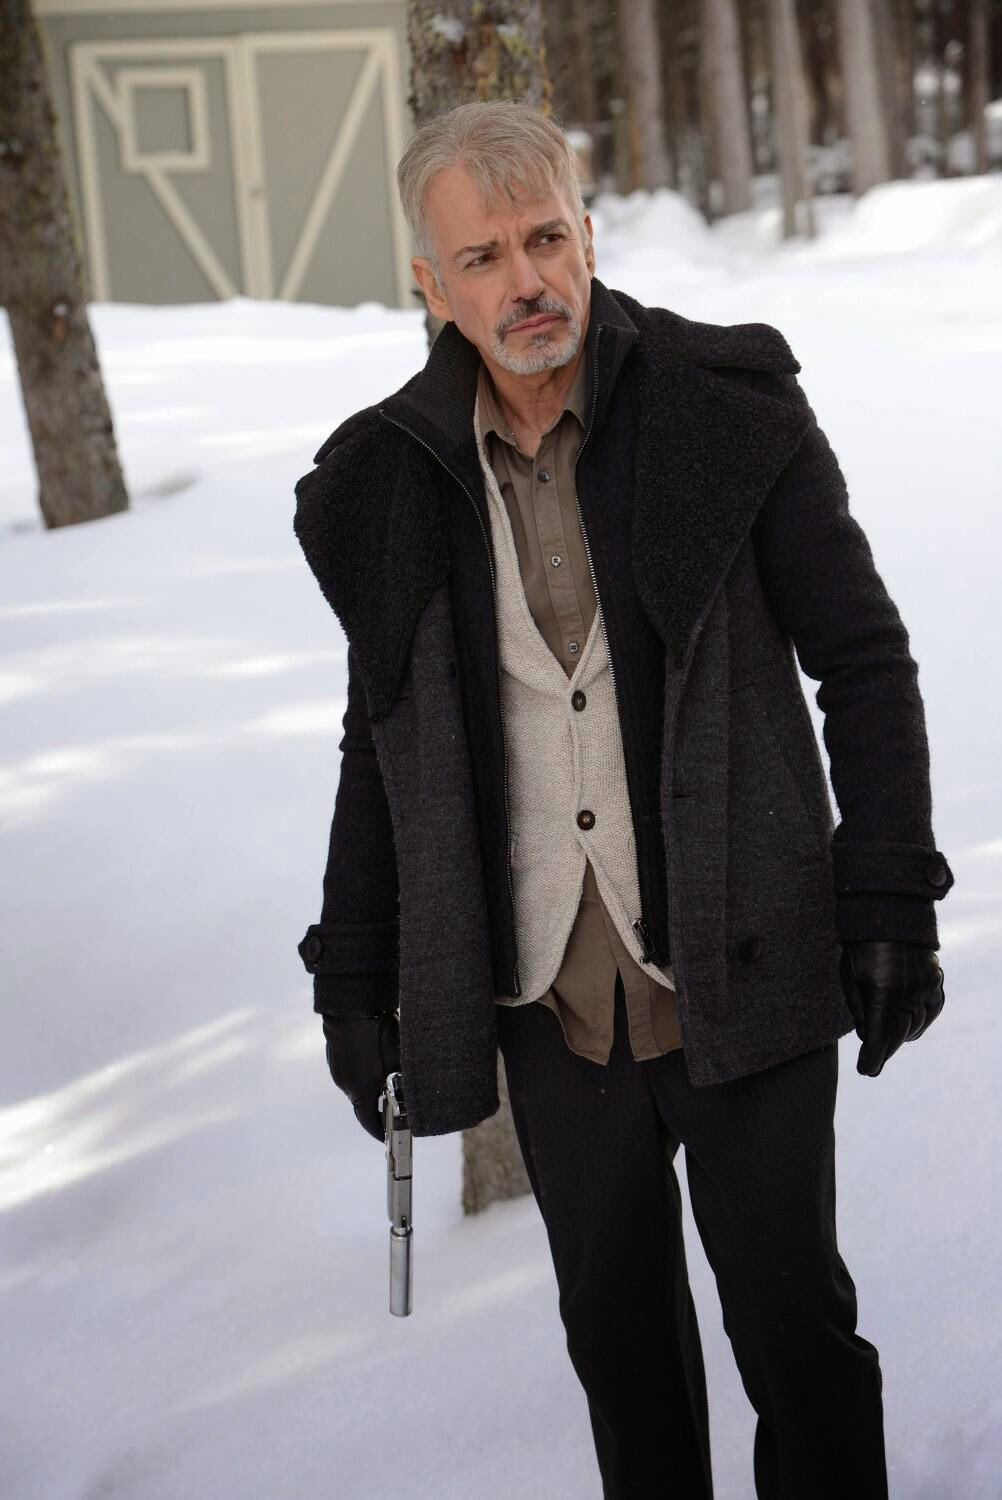 Billy Bob Thornton as silver haired goatee wearing Lorne Malvo in Fargo Season 1 Finale Episode 10 Morton's Fork